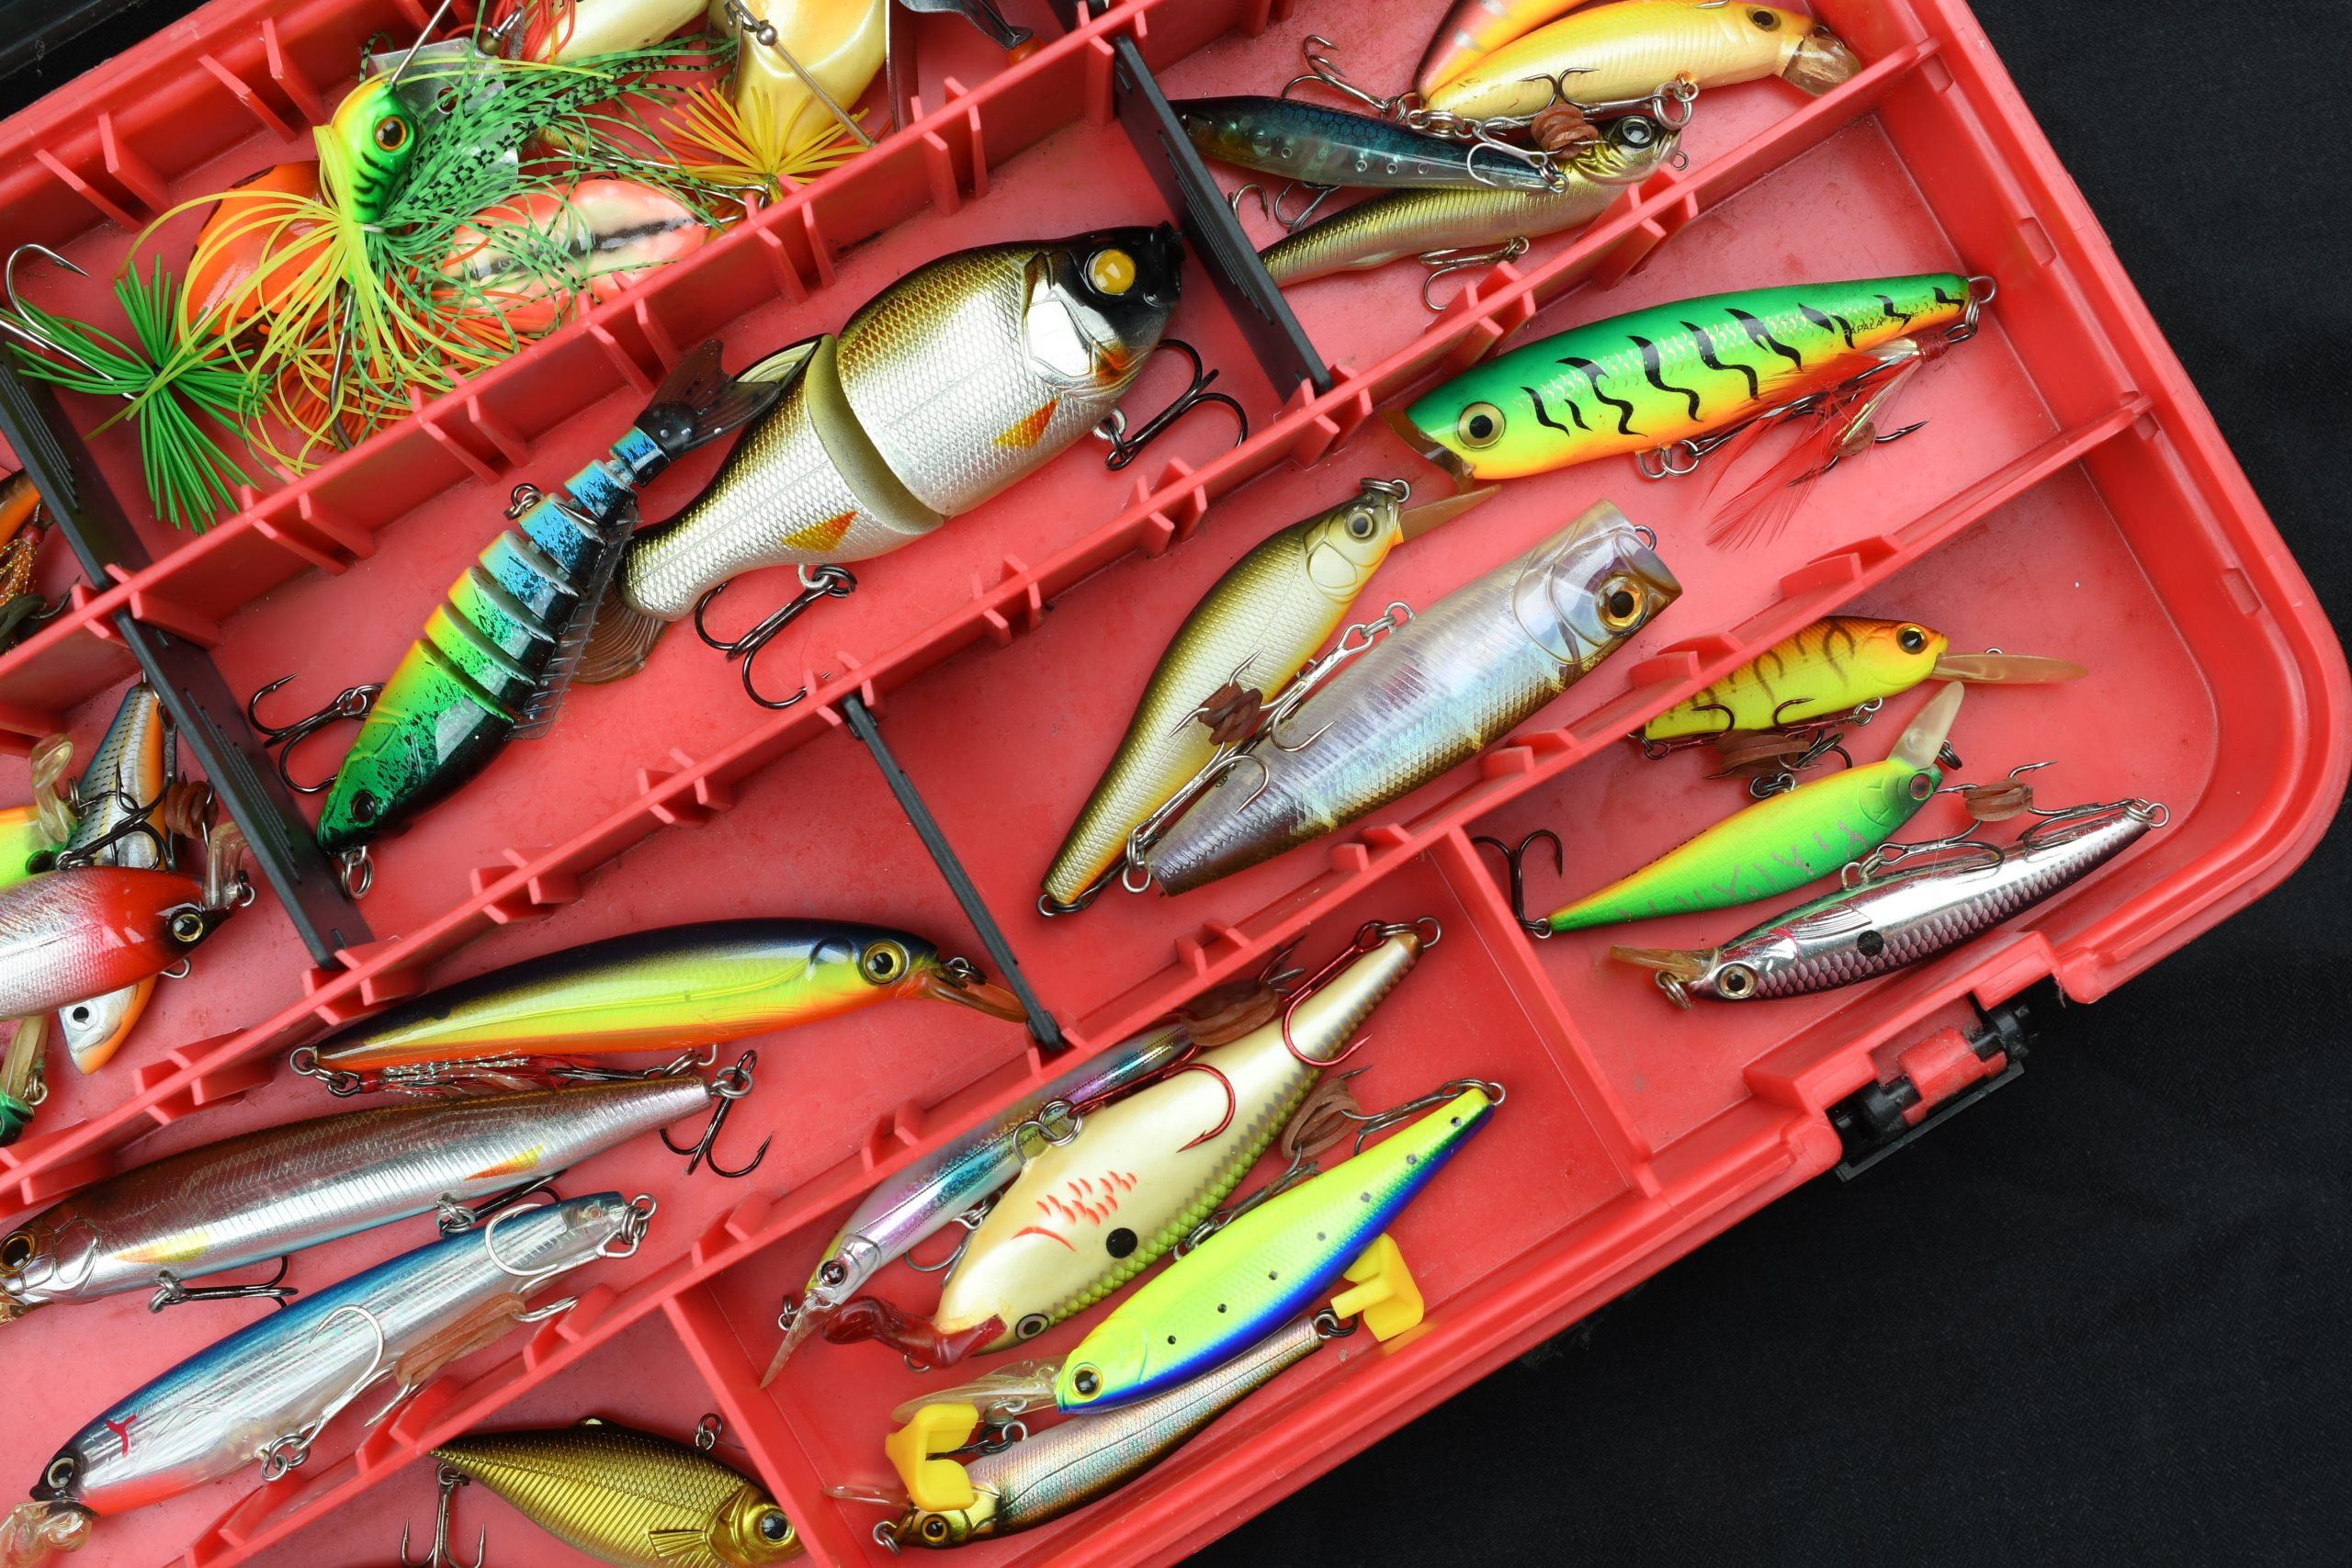 Fishing lures inside a tackle box with cranks and jerkbaits.